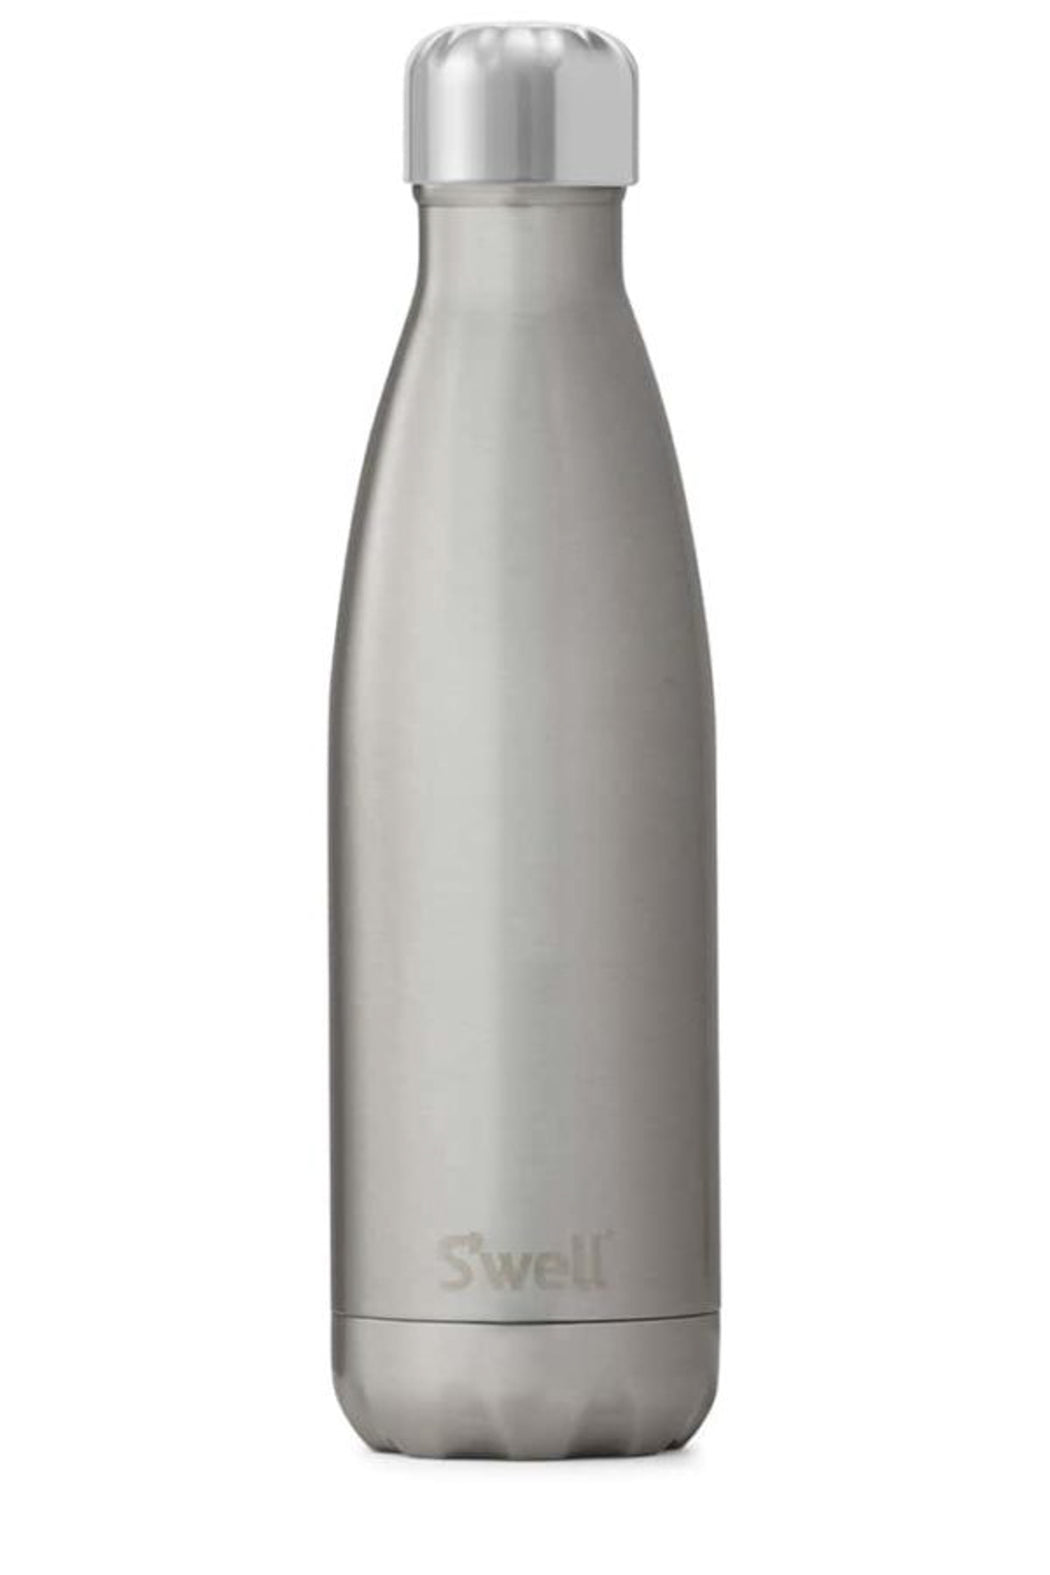 S'WELL BOTTLE shimmer silver lining 17 oz